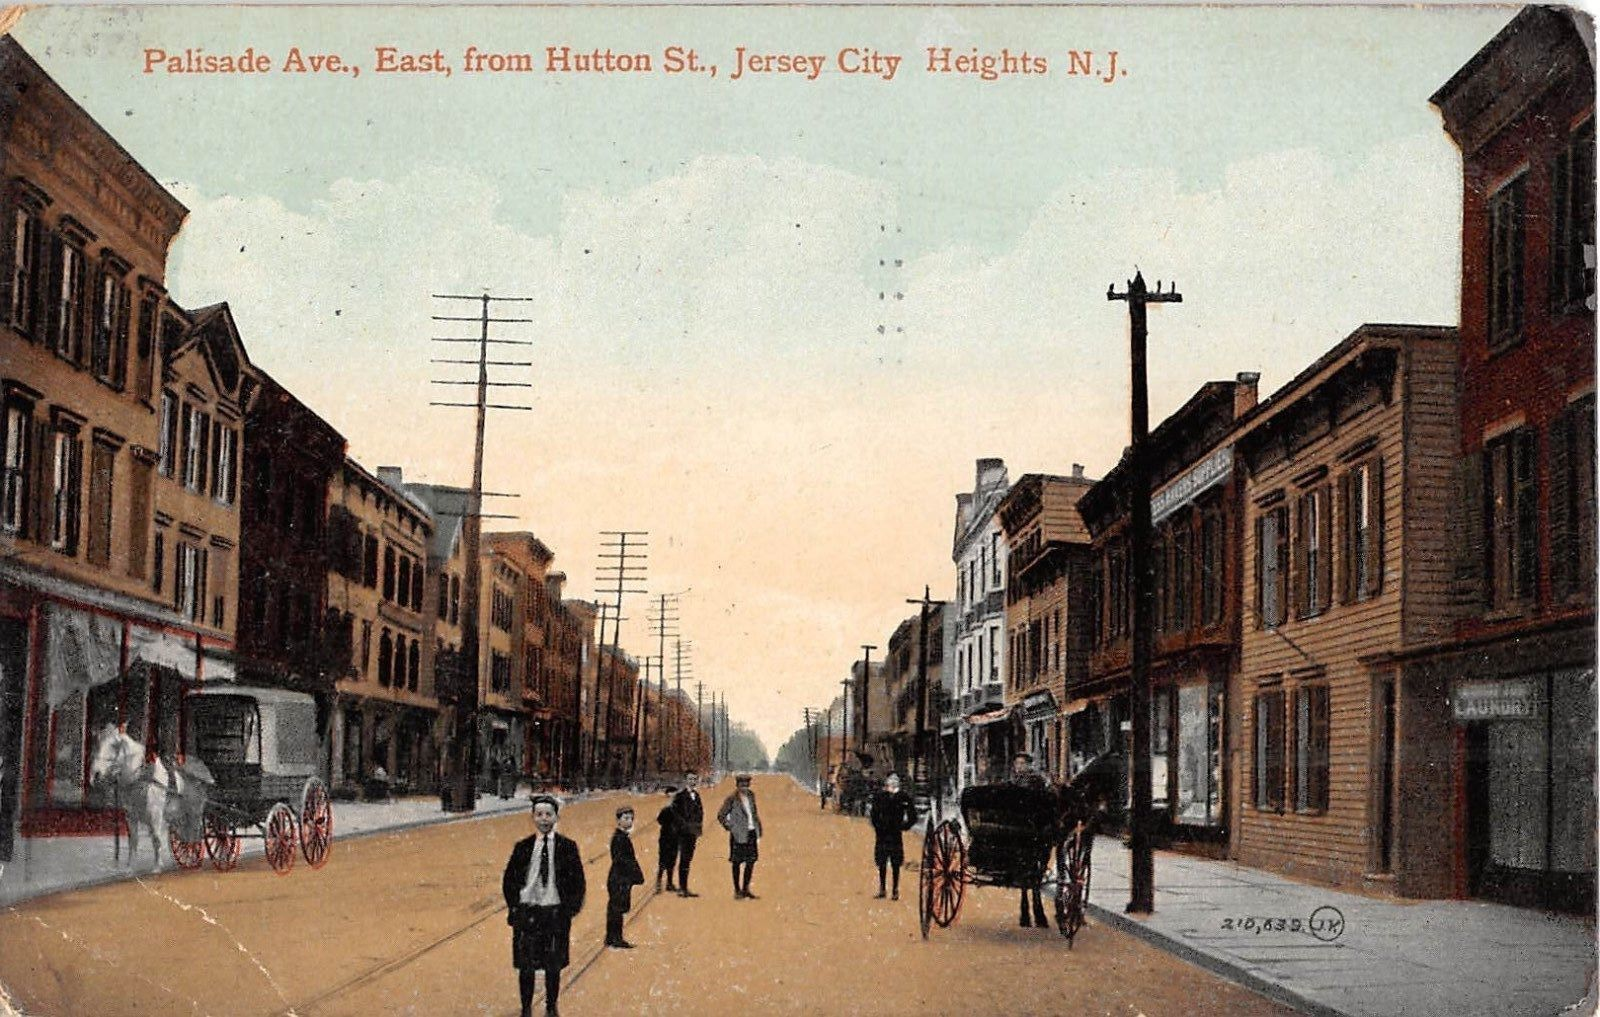 1913 Stores Palisade Ave East From Hutton St Jersey City Nj Post Card Jersey City City Heights Palisades